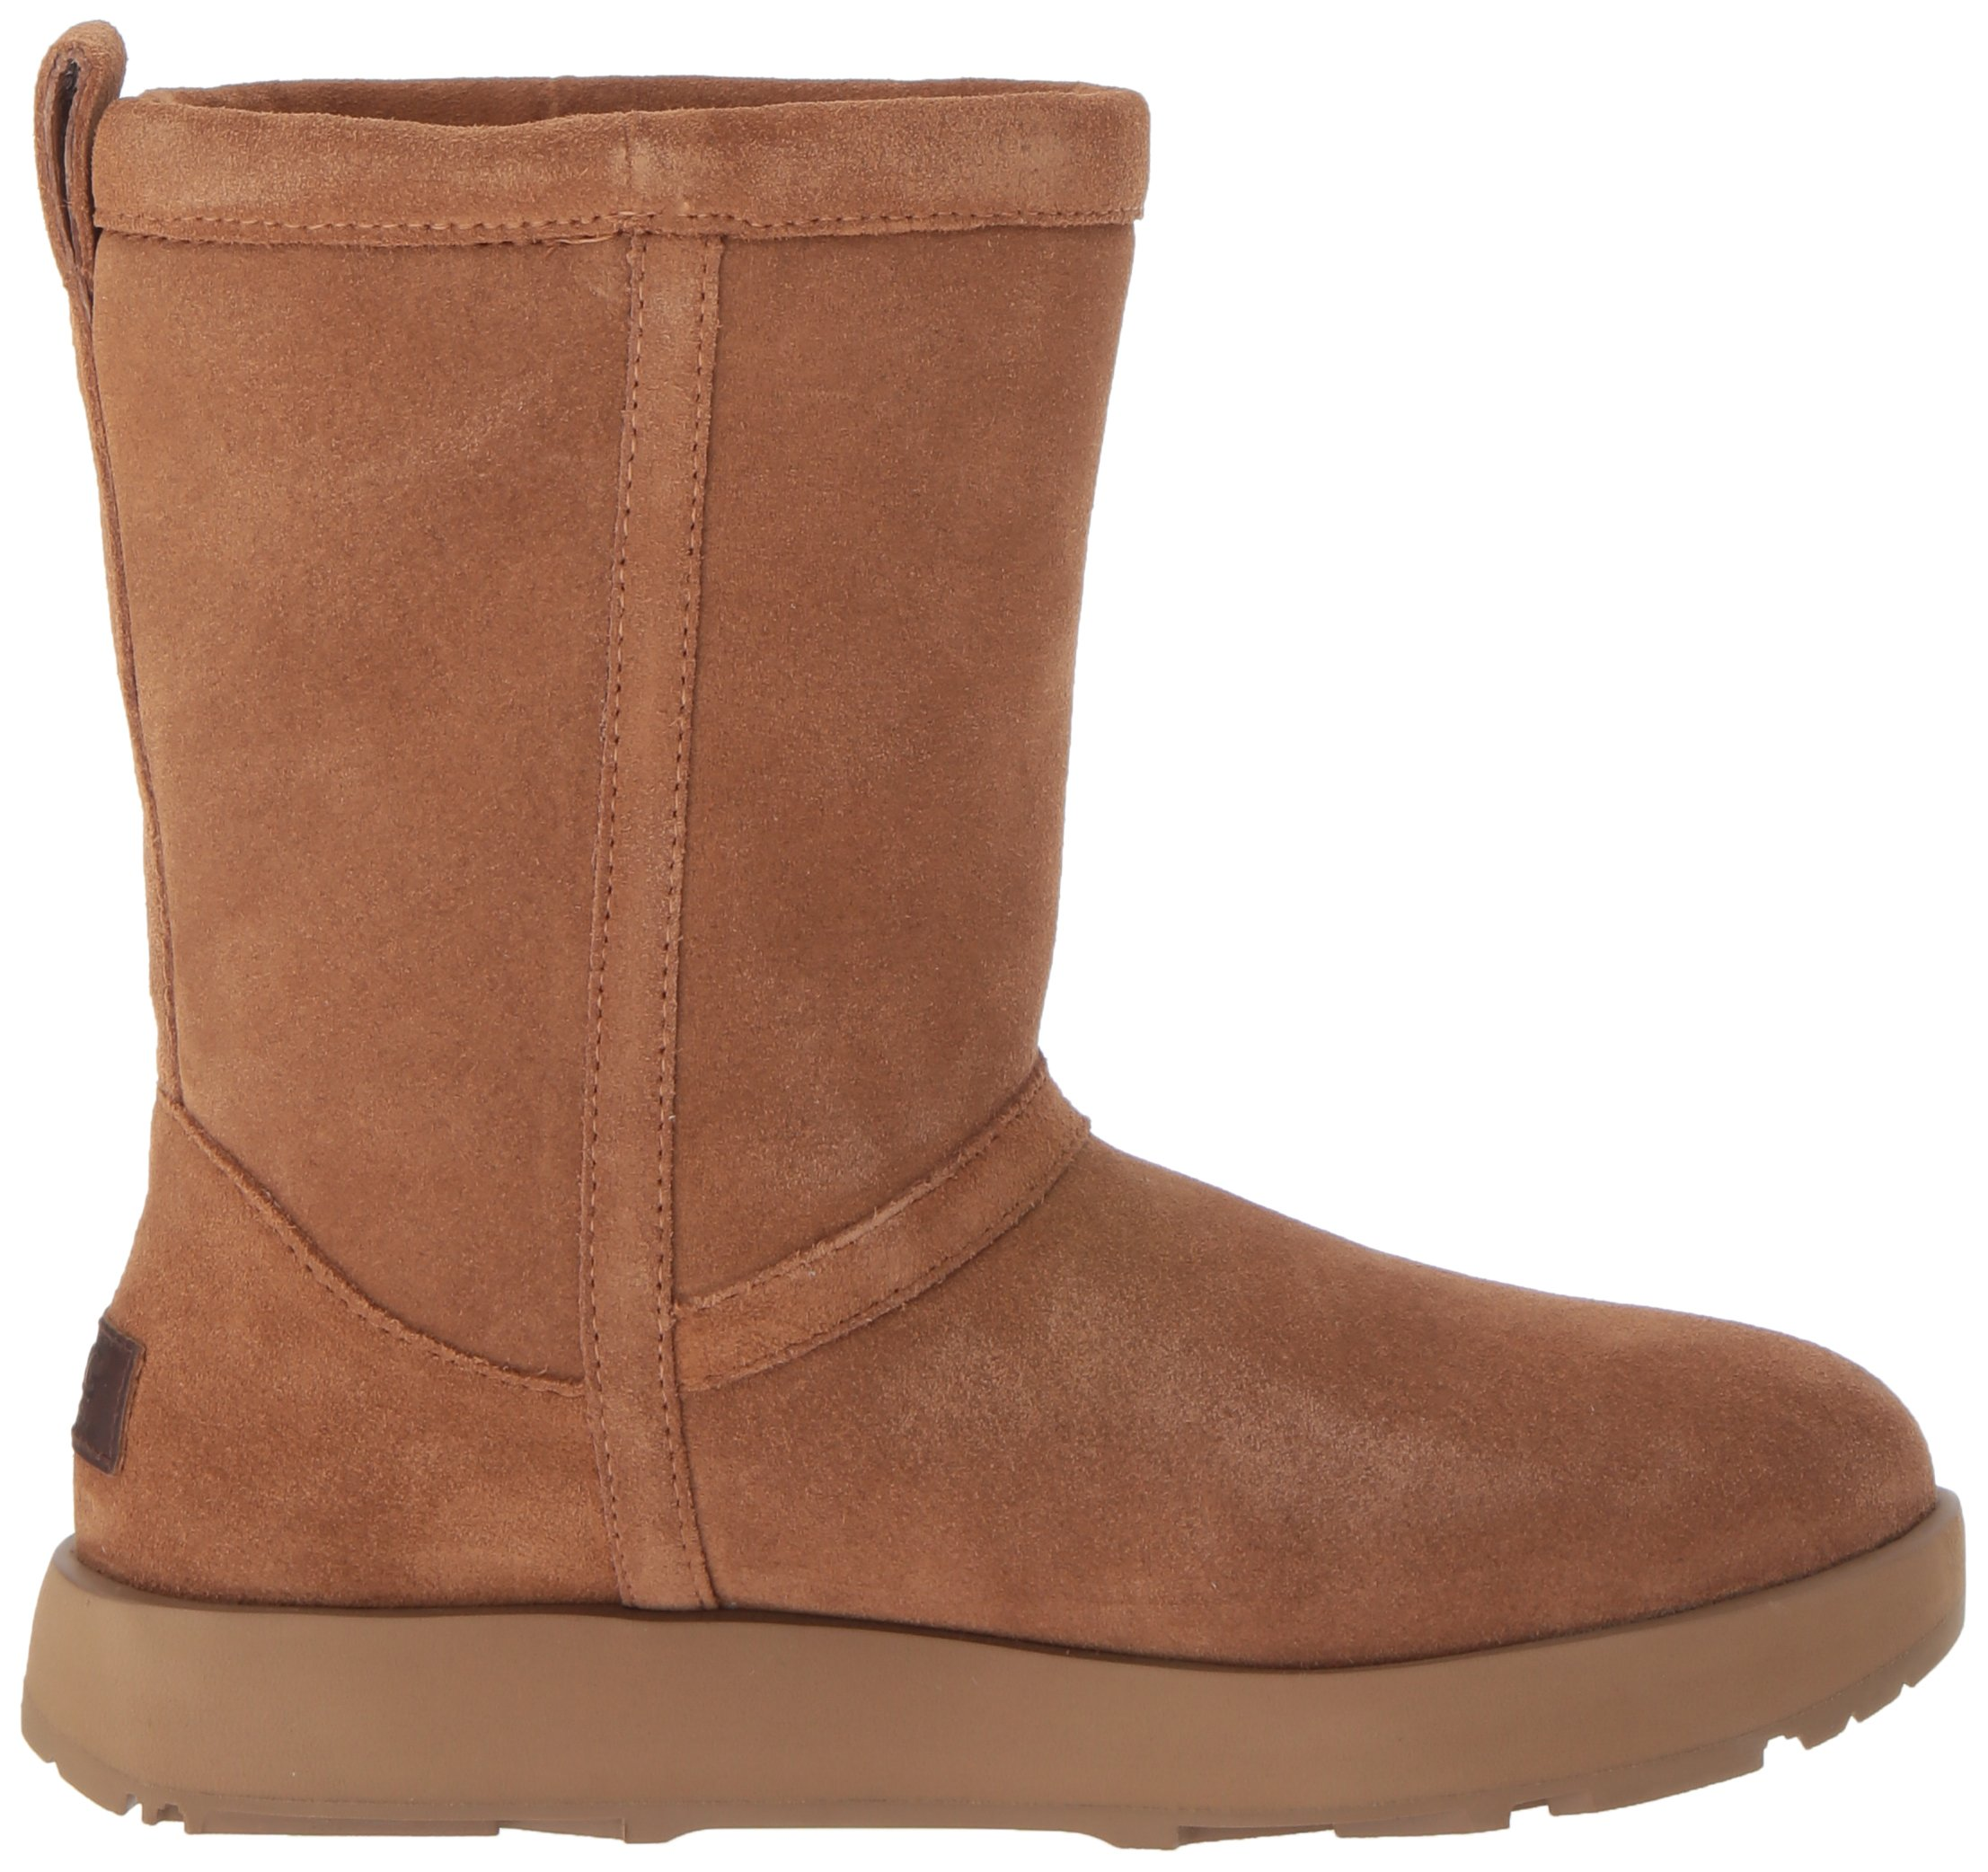 UGG Women's Classic Short Waterproof Snow Boot, Chestnut, 9 M US by UGG (Image #7)